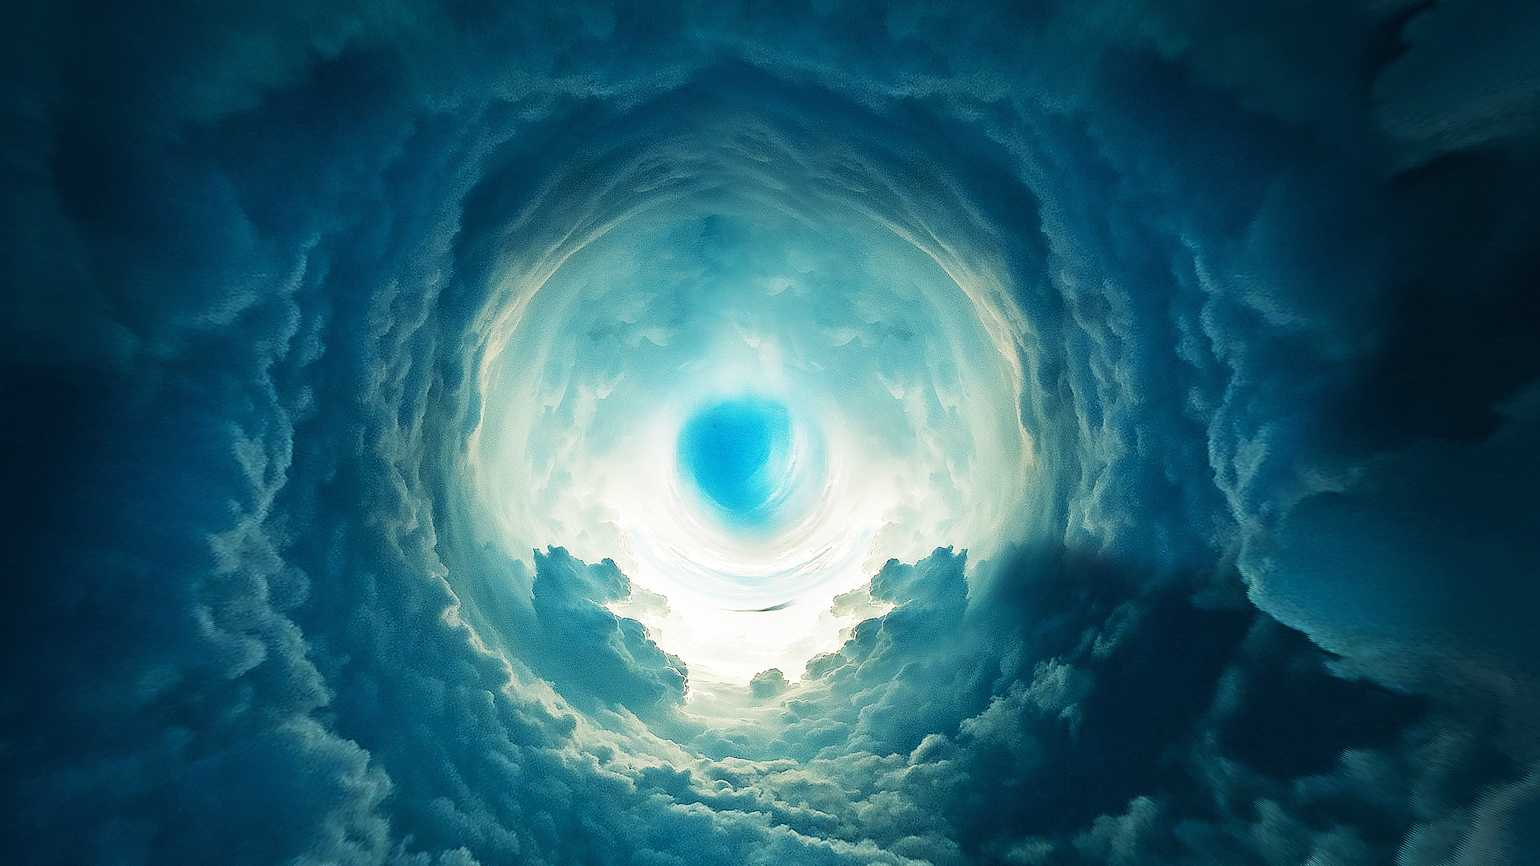 An artist's interpretation of the light at the end of the tunnel that many near-death experiencers report.